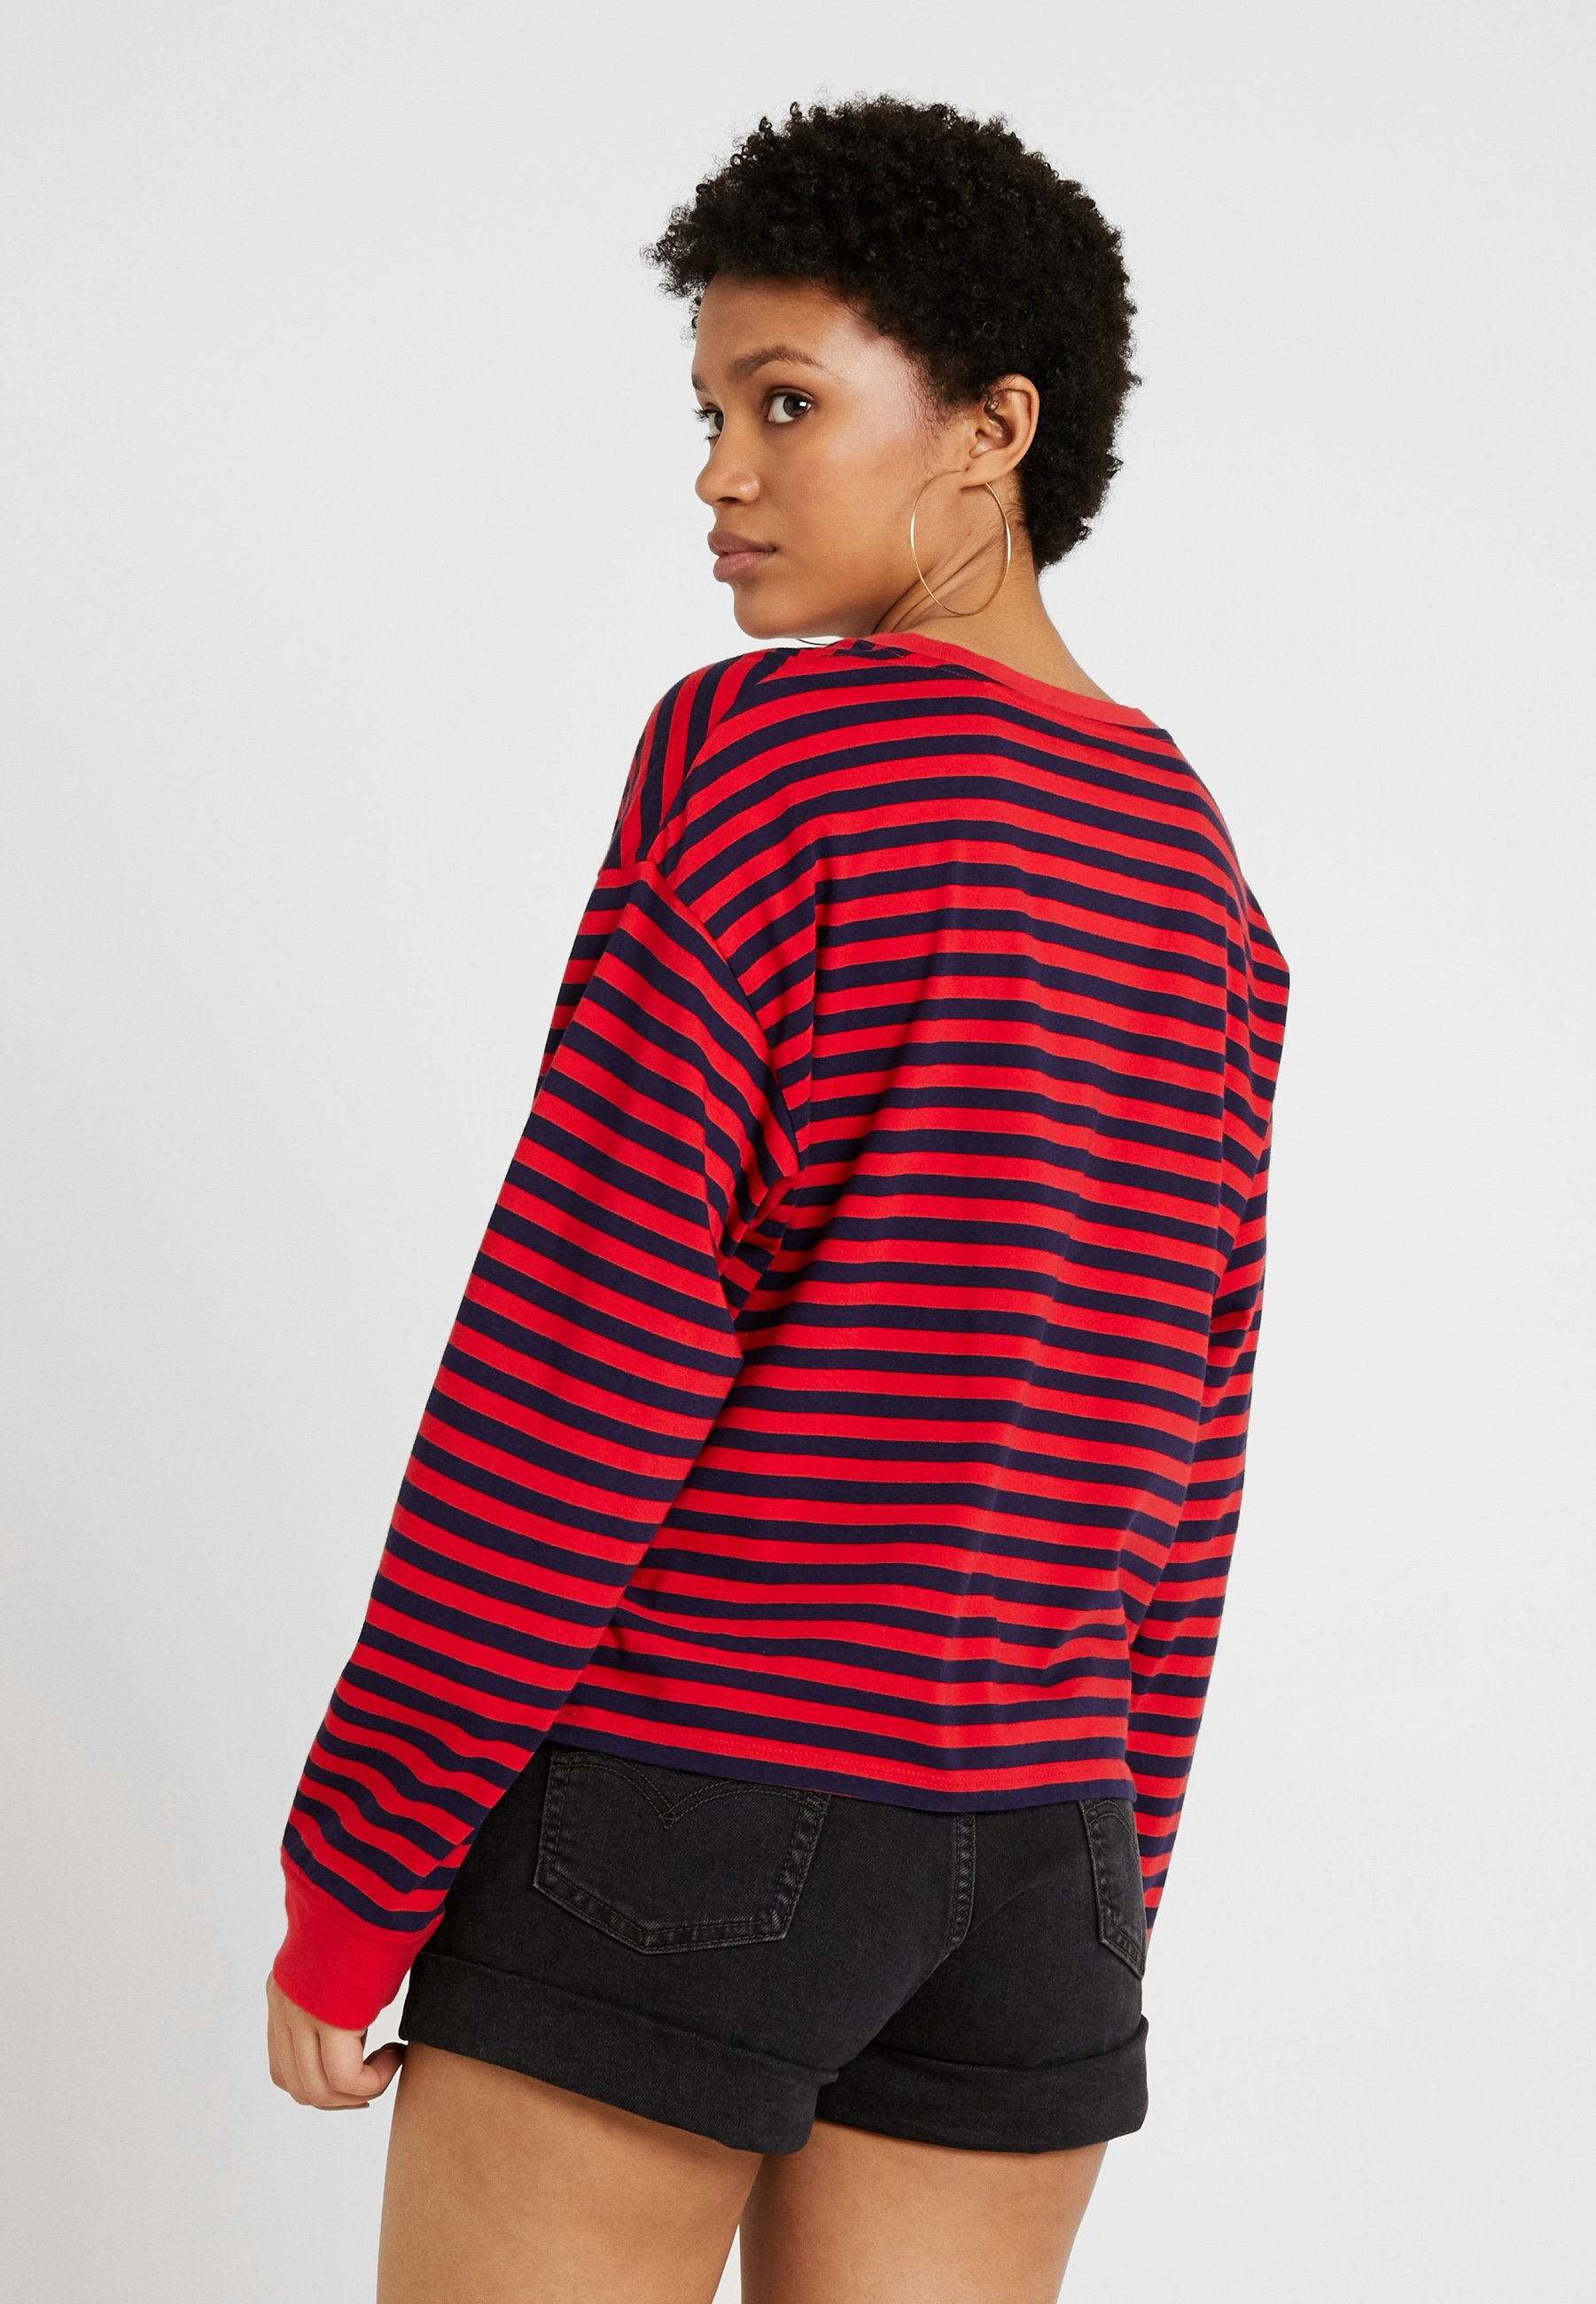 LONG SLEEVET Levix27;s® à manches GRAPHIC longues shirt red n8wkOP0